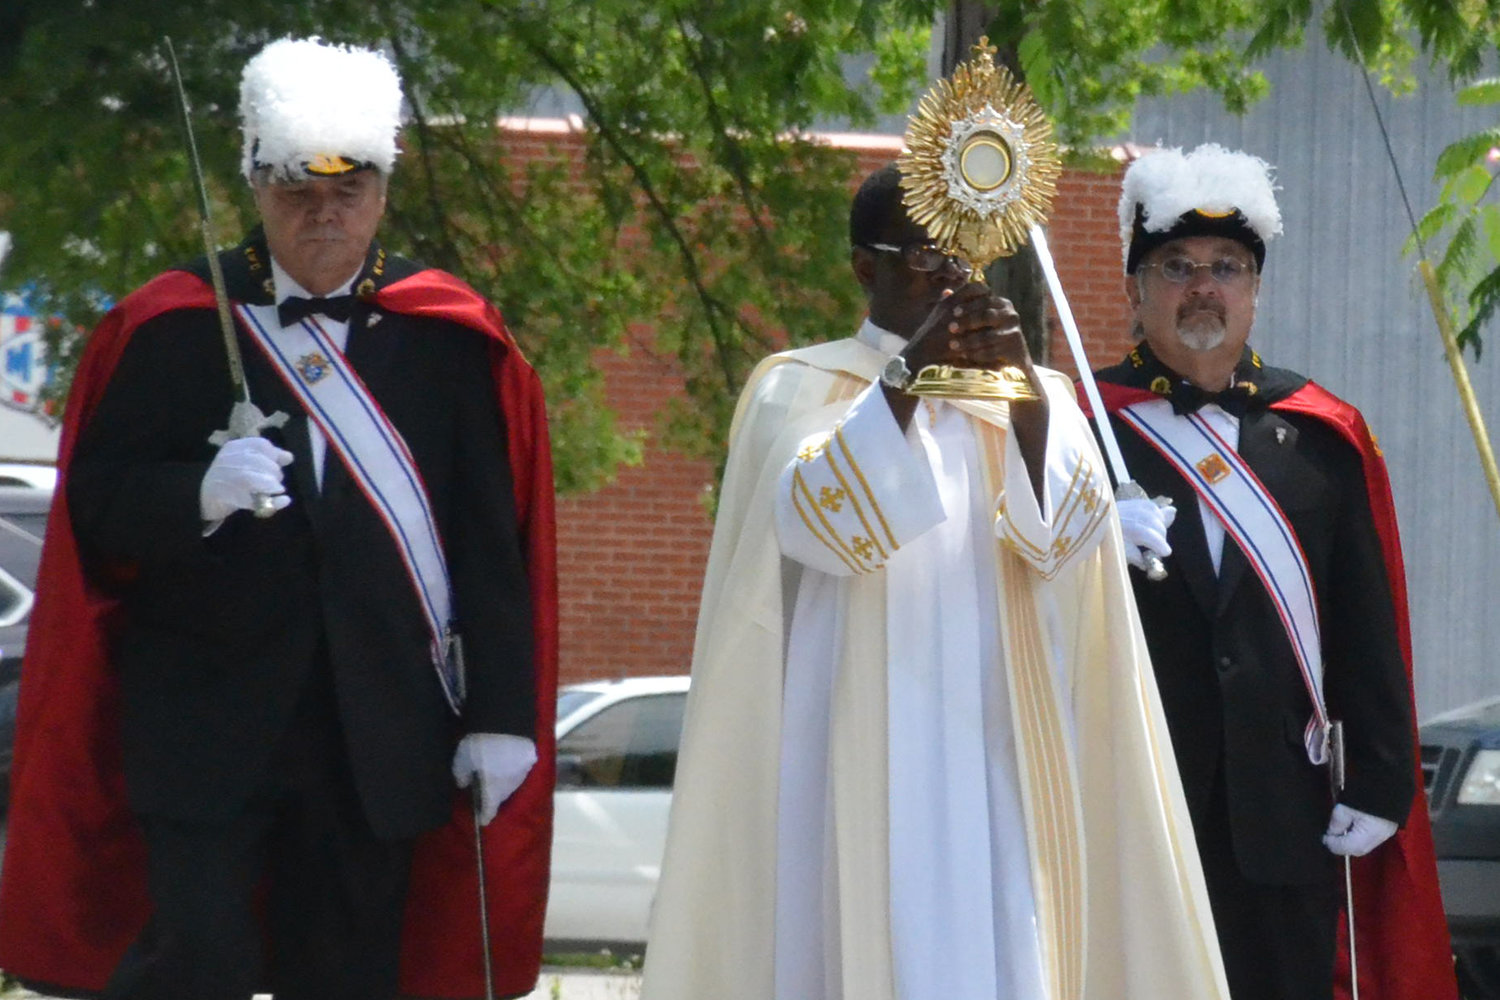 Father Augustine Okoli, administrator of the parishes in Martinsburg, Montgomery City, Jonesburg and Wellsville, carries the Most Blessed Sacrament in procession on the Solemnity of the Body and Blood of Christ in 2017.